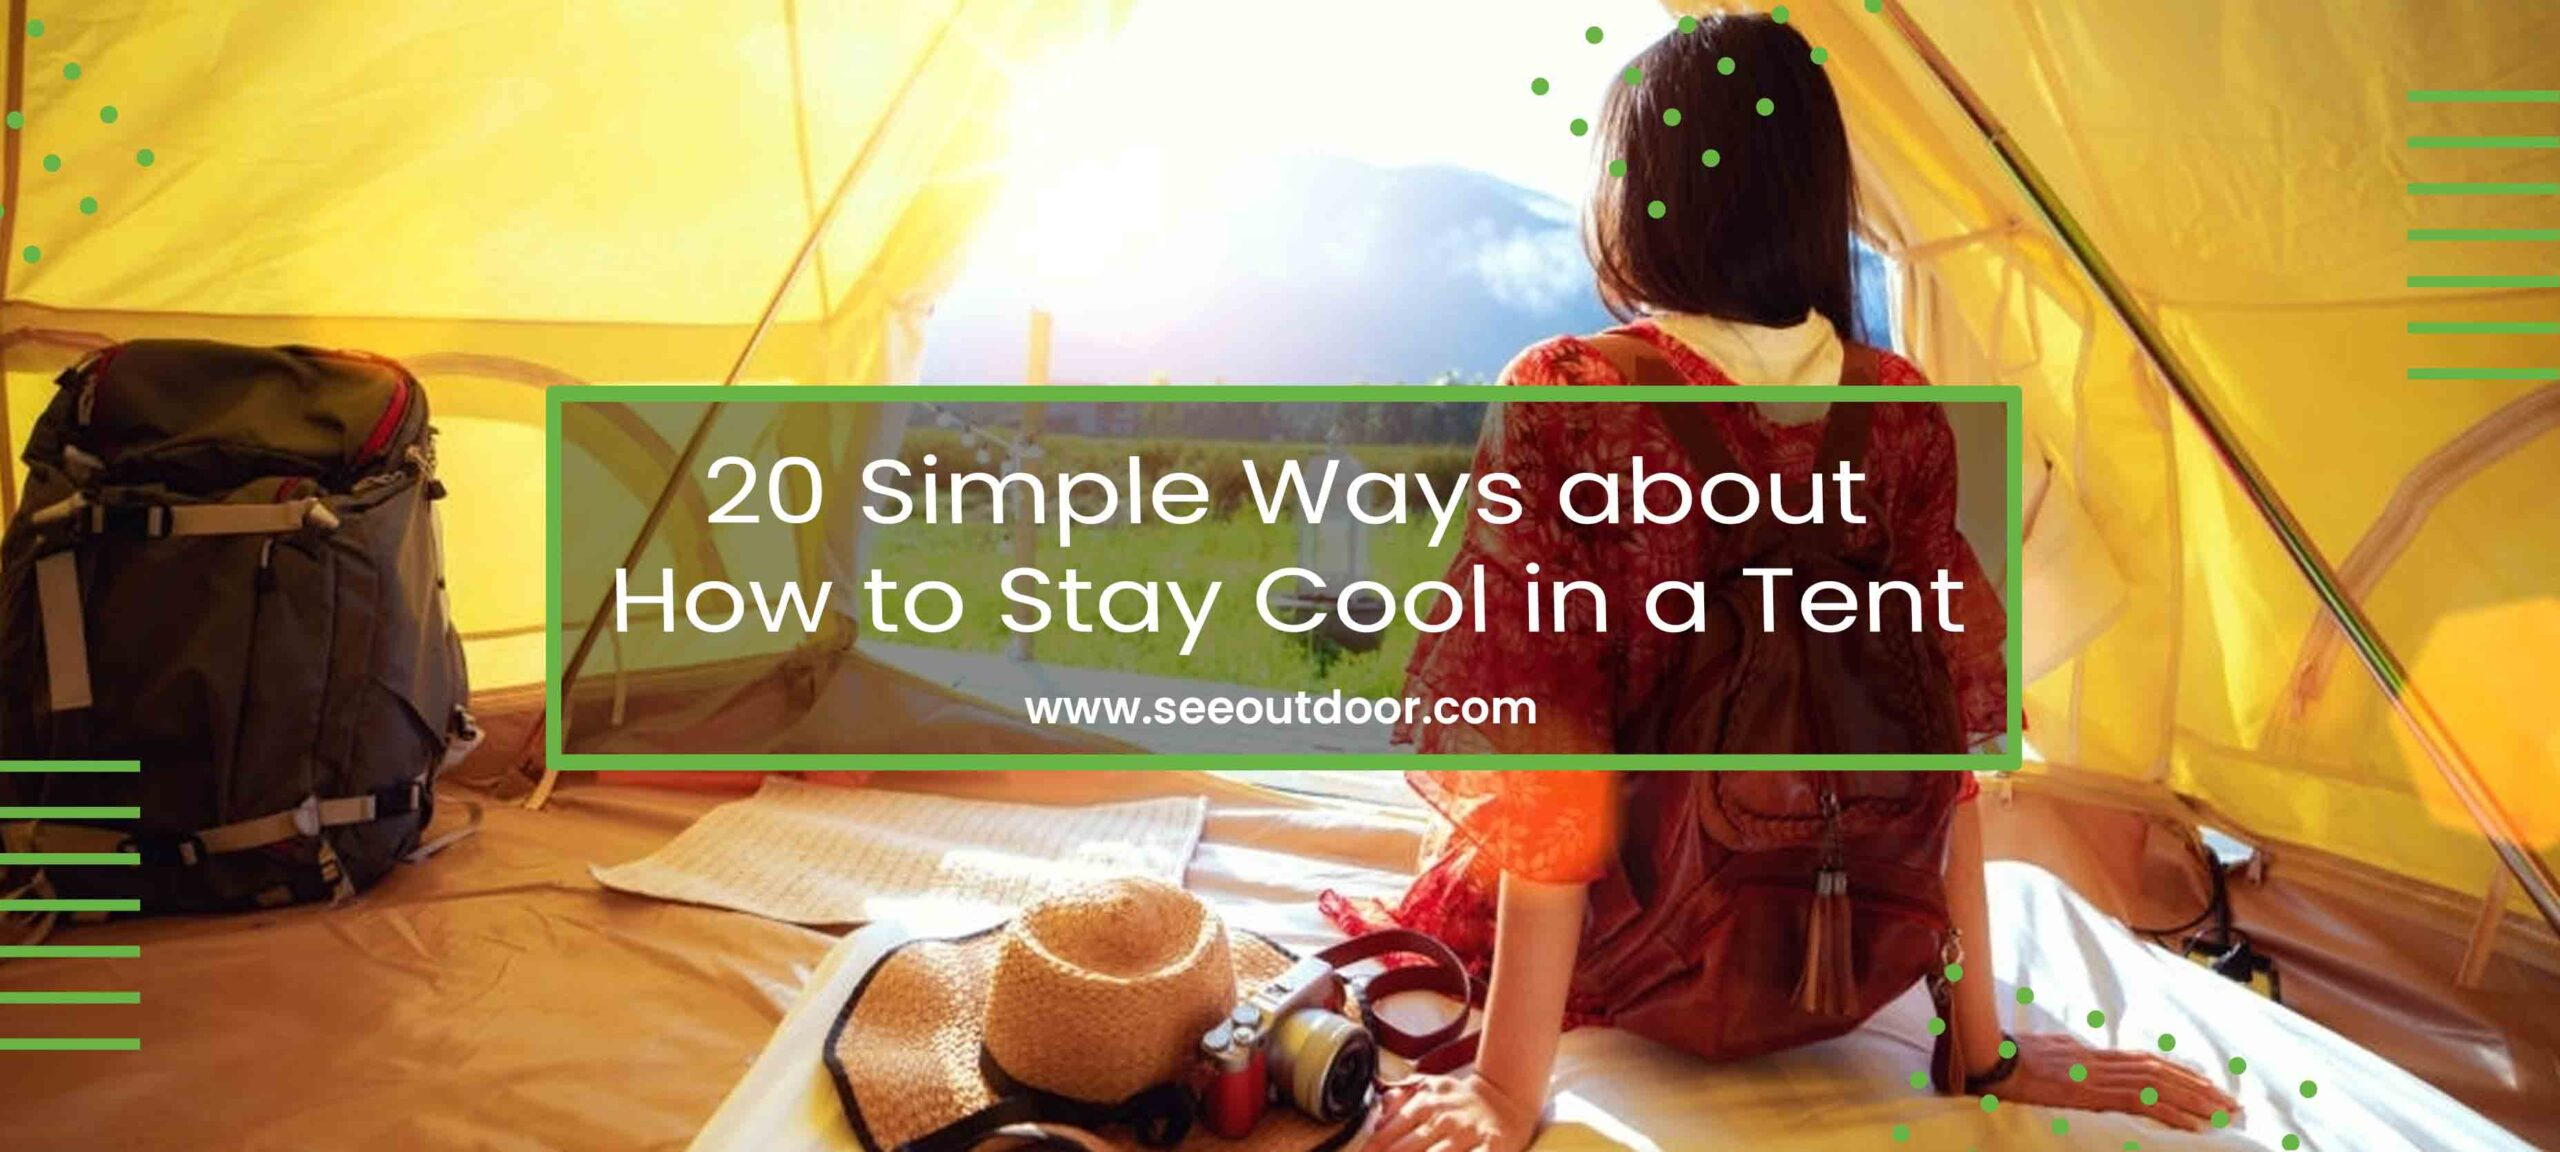 20 Simple Ways about How to Stay Cool in a Tent